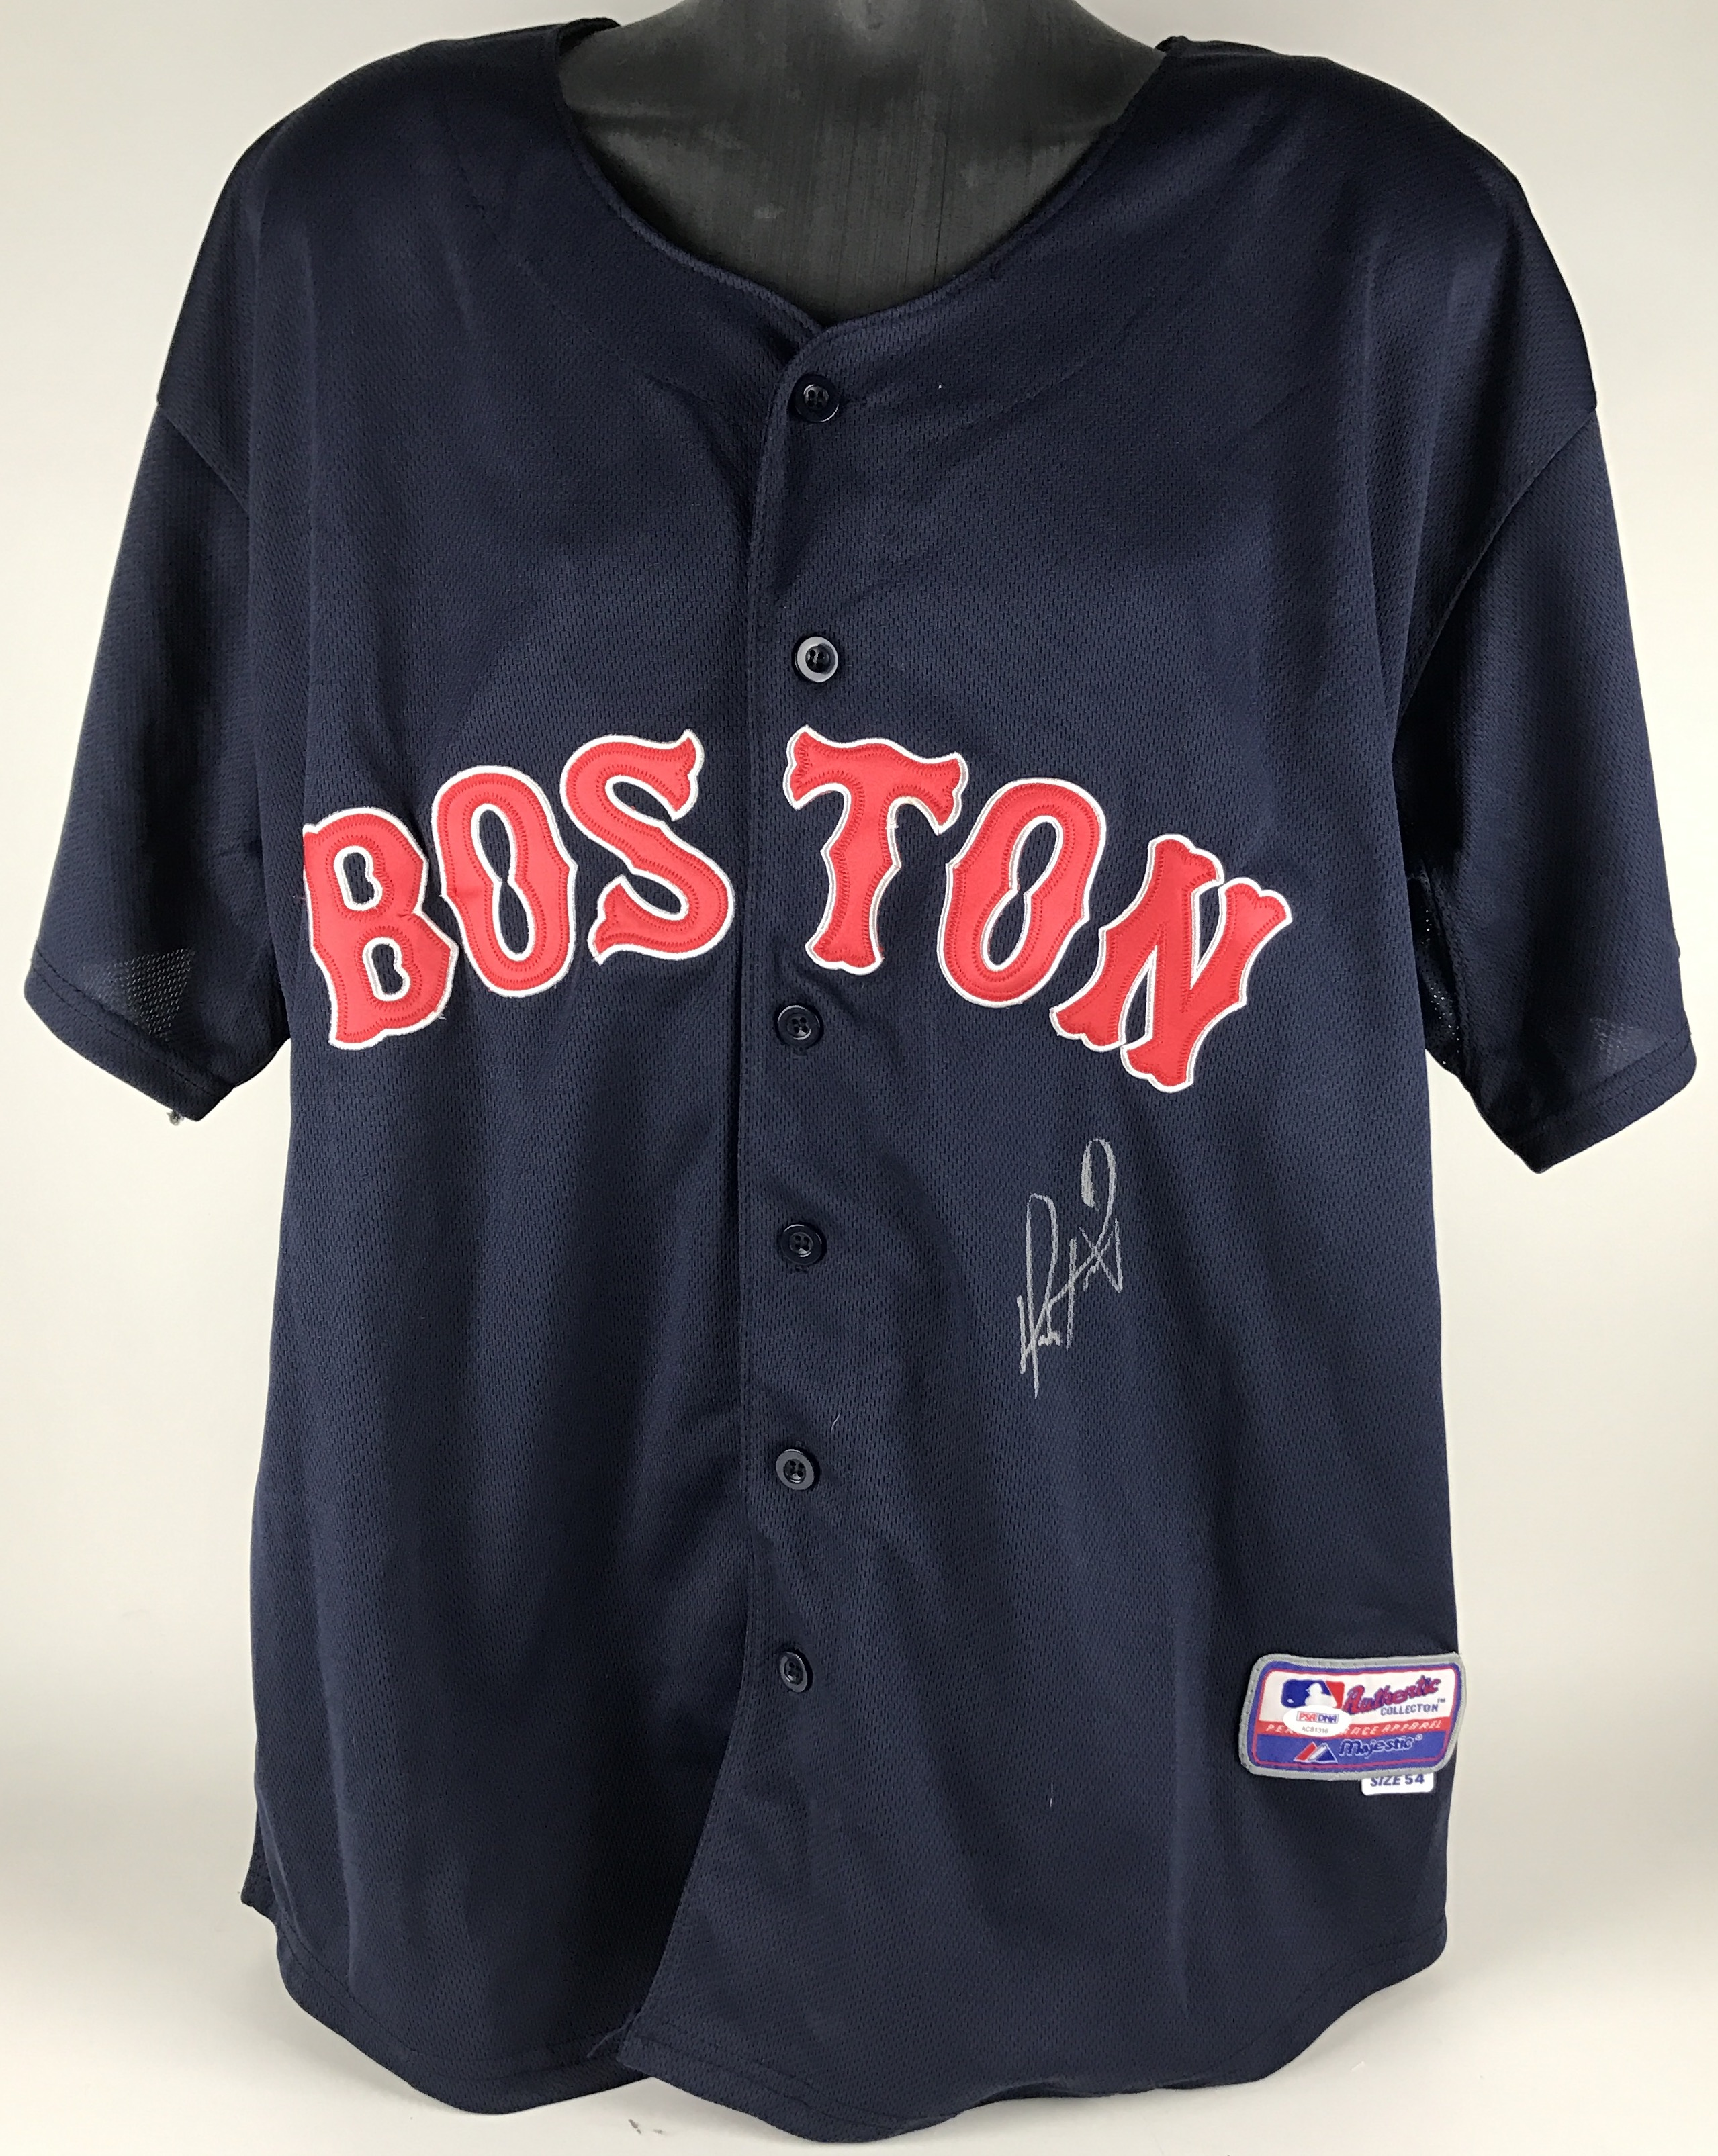 the best attitude c8a13 cdedb Lot Detail - David Ortiz Signed Boston Red Sox Road Jersey ...